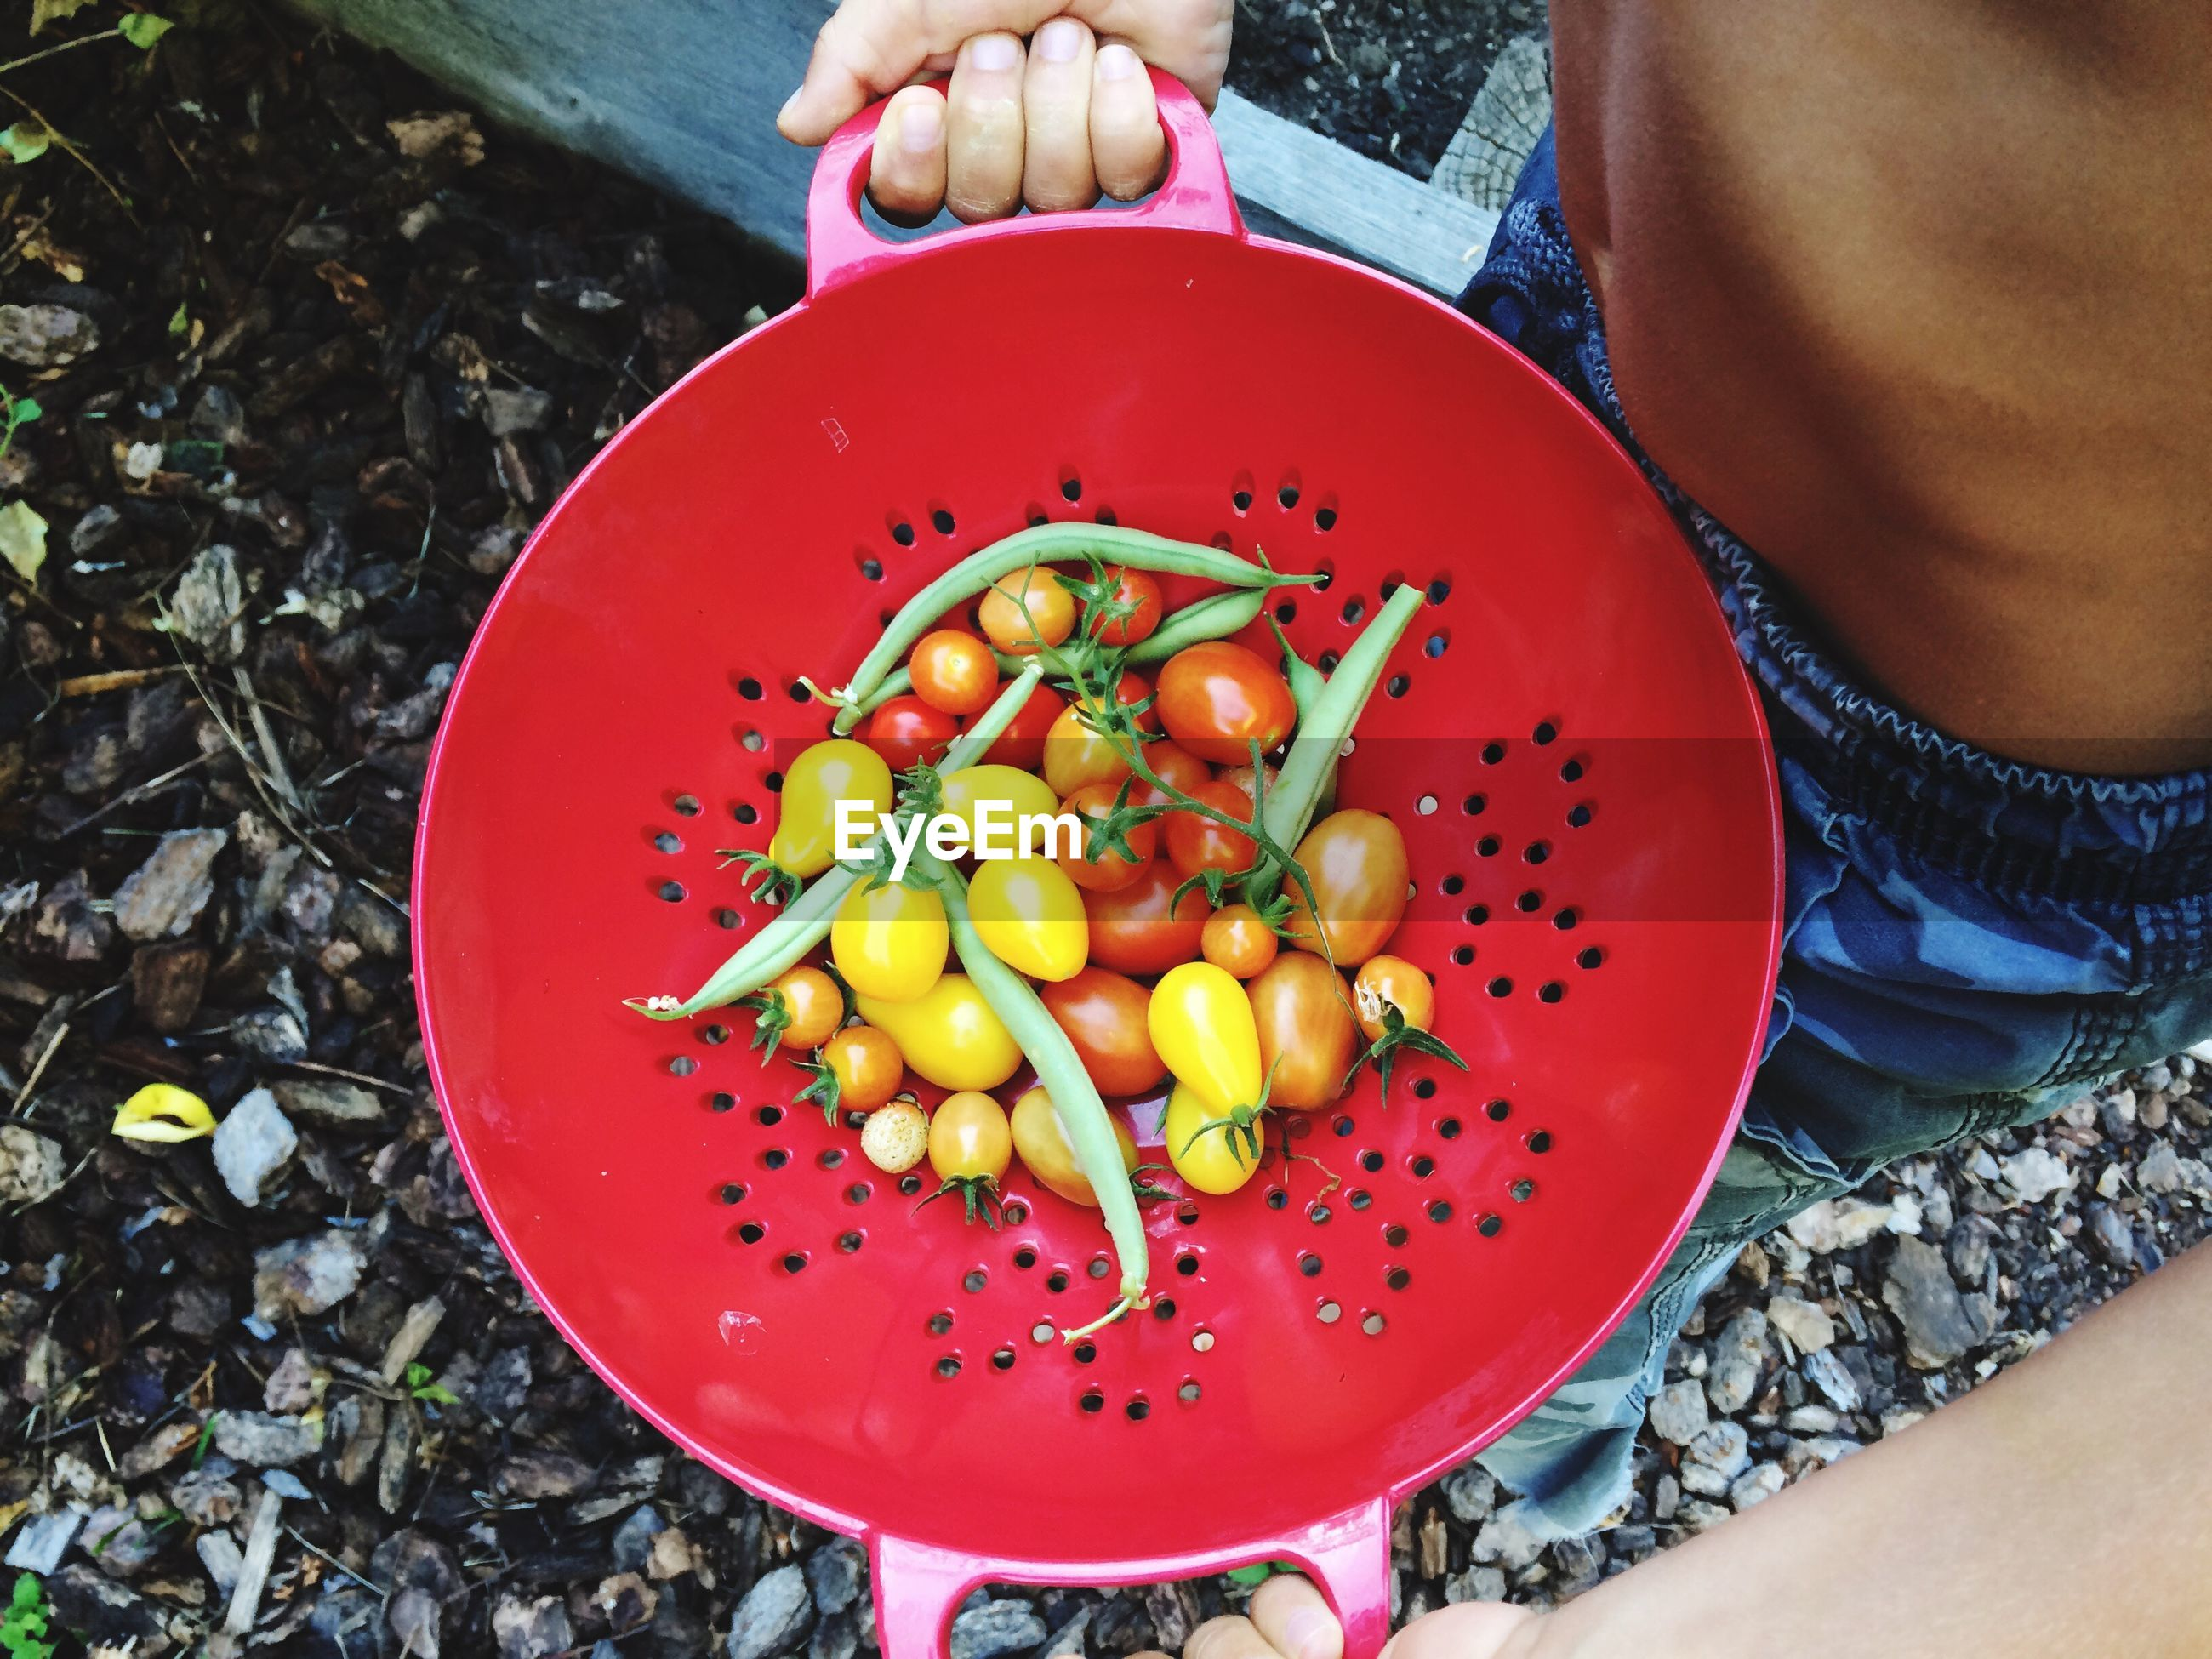 Midsection of shirtless man holding colander with vegetables